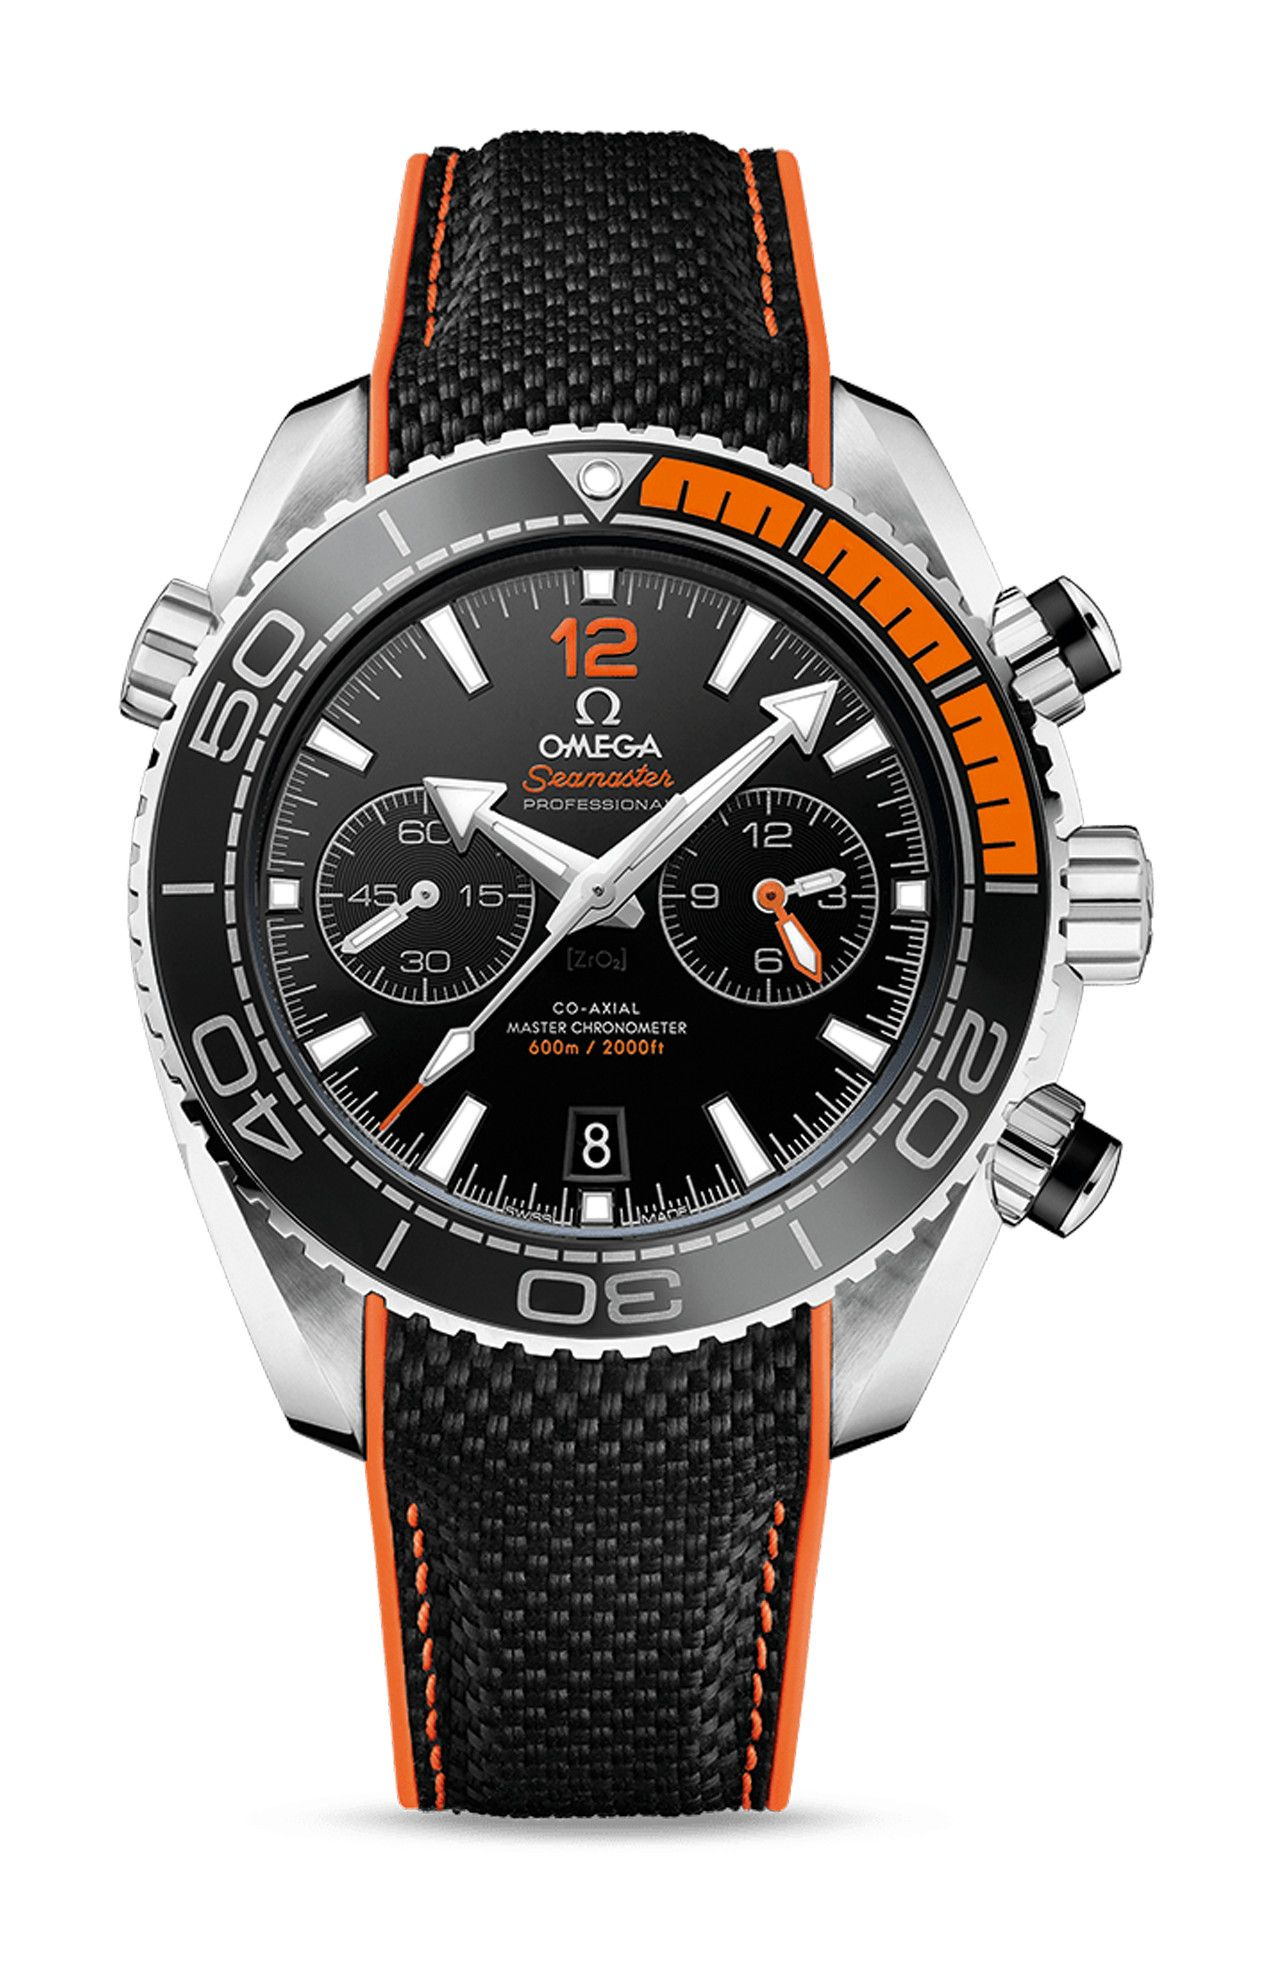 PLANET OCEAN 600M CO-AXIAL MASTER CHRONOMETER CHRONOGRAPH - 215.32.46.51.01.001